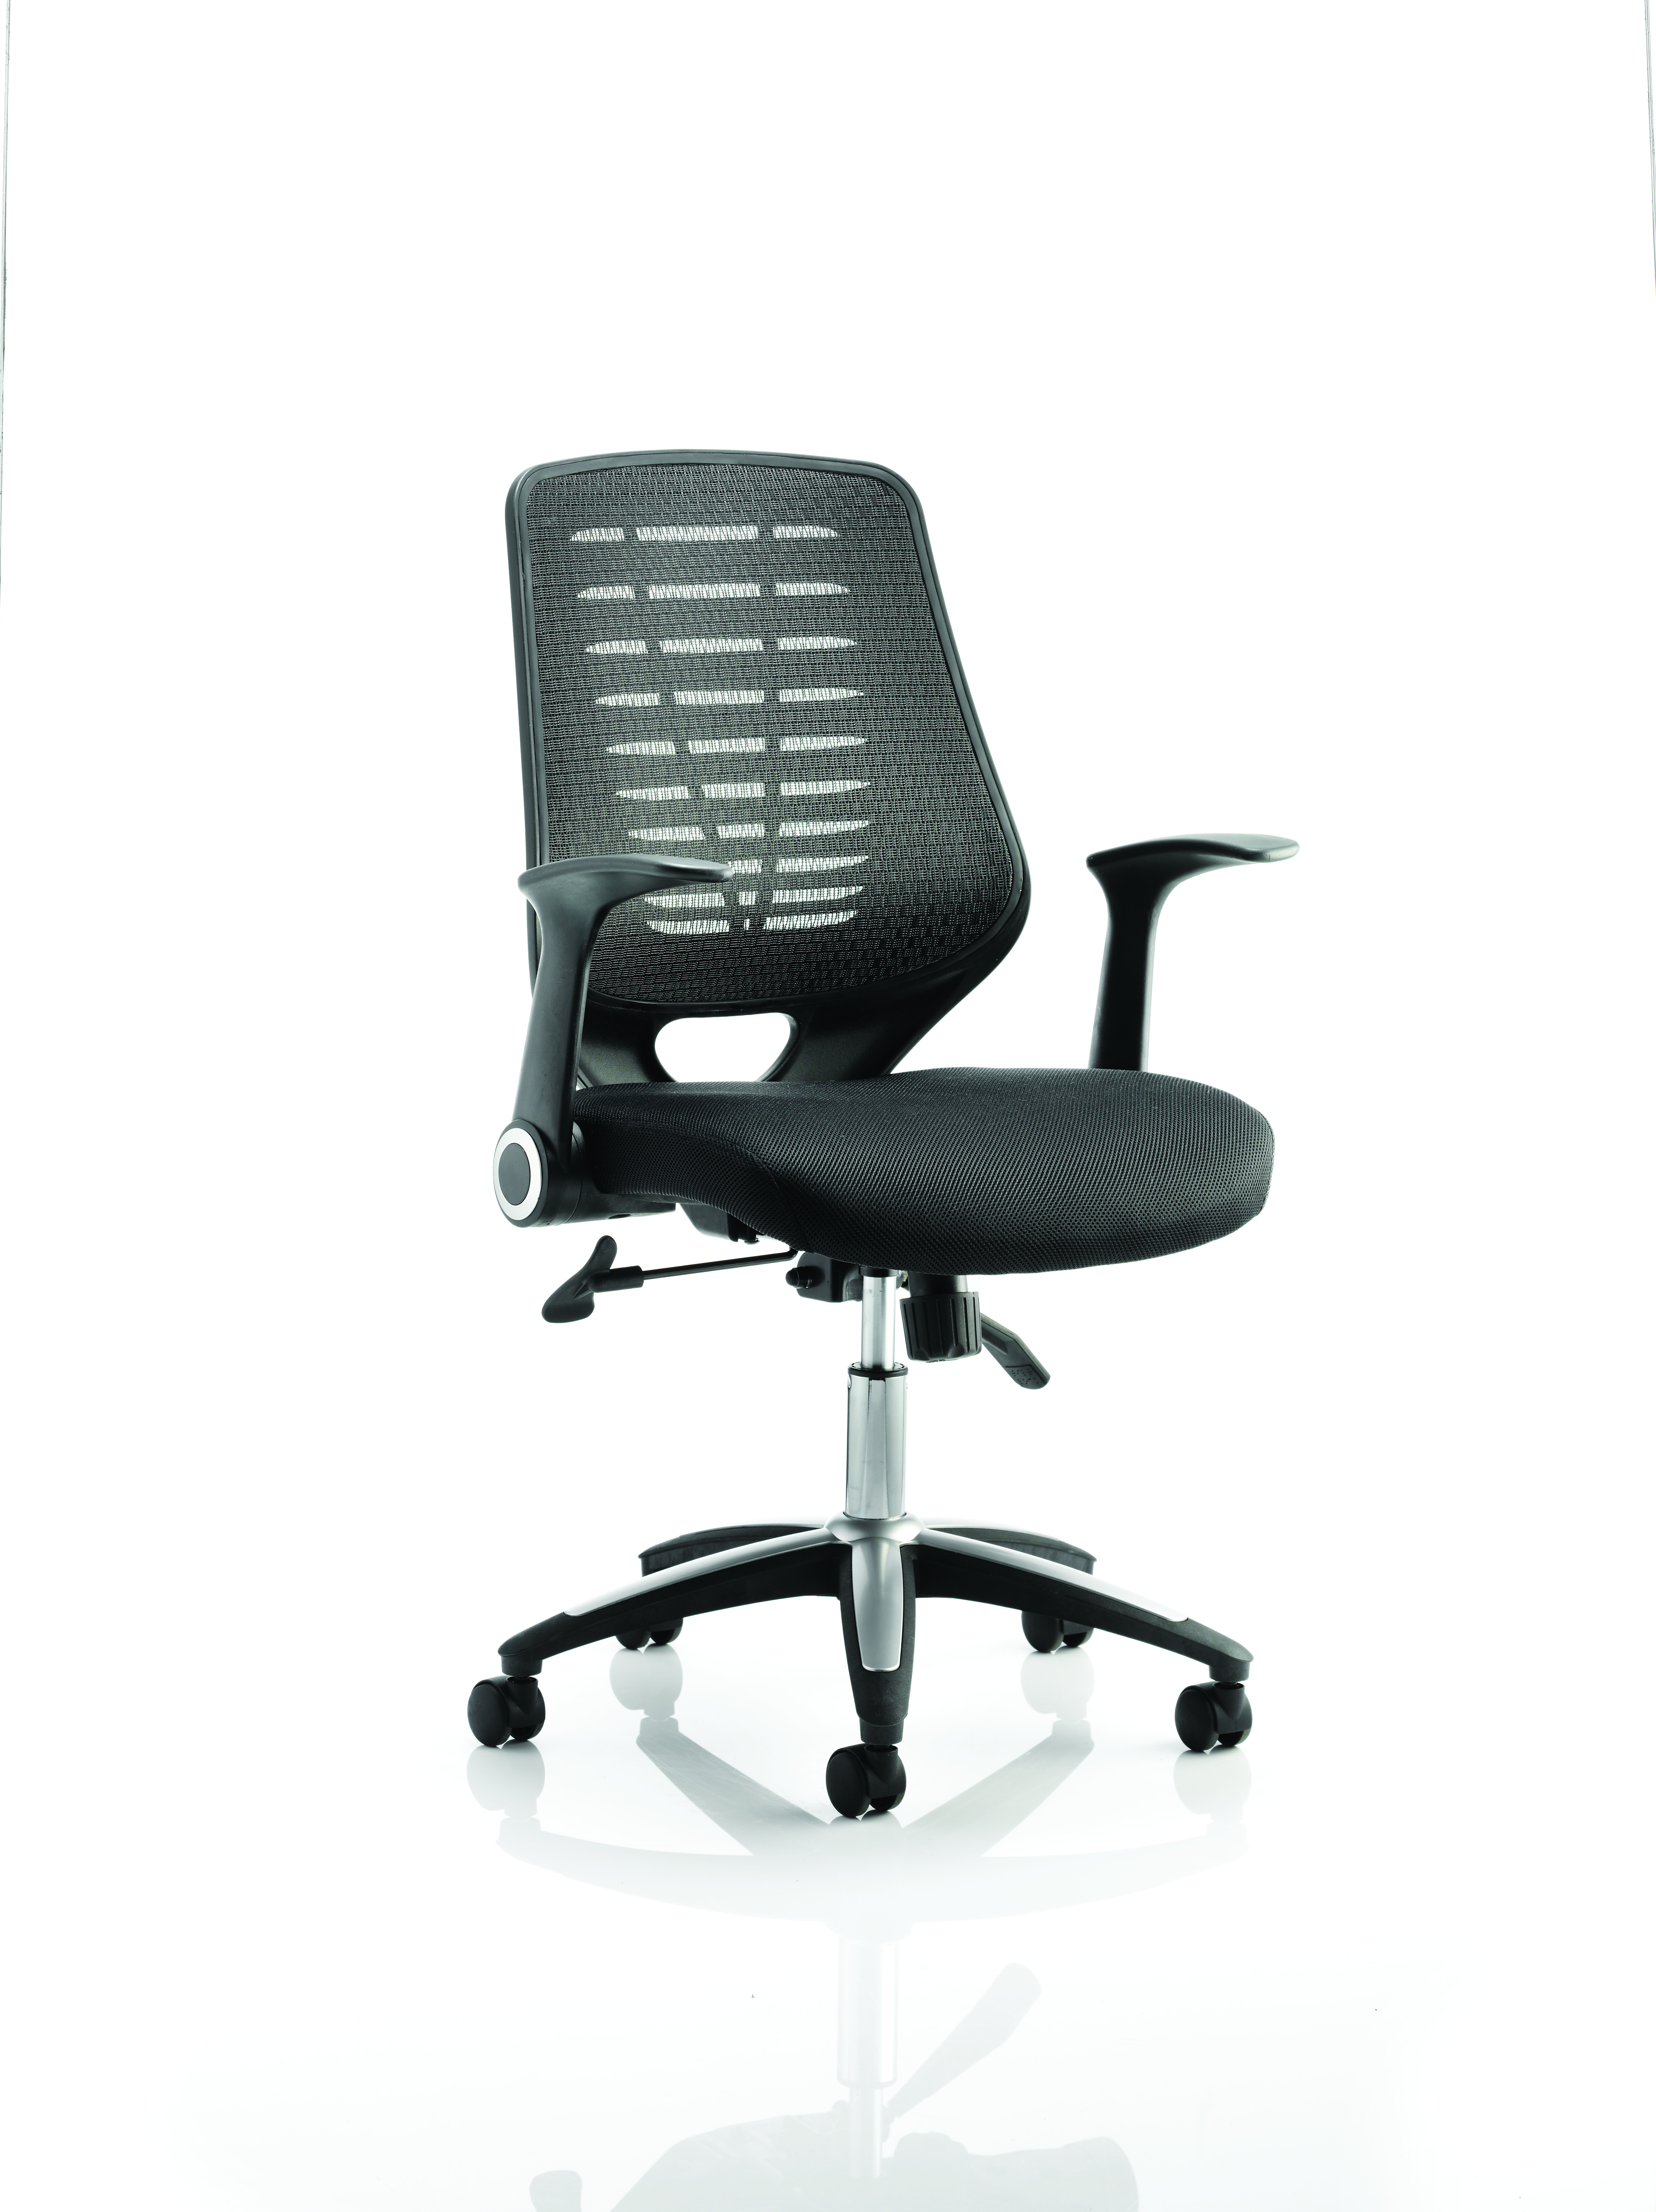 Desk Chairs Relay Chair Airmesh Seat Black Back With Arms OP000115